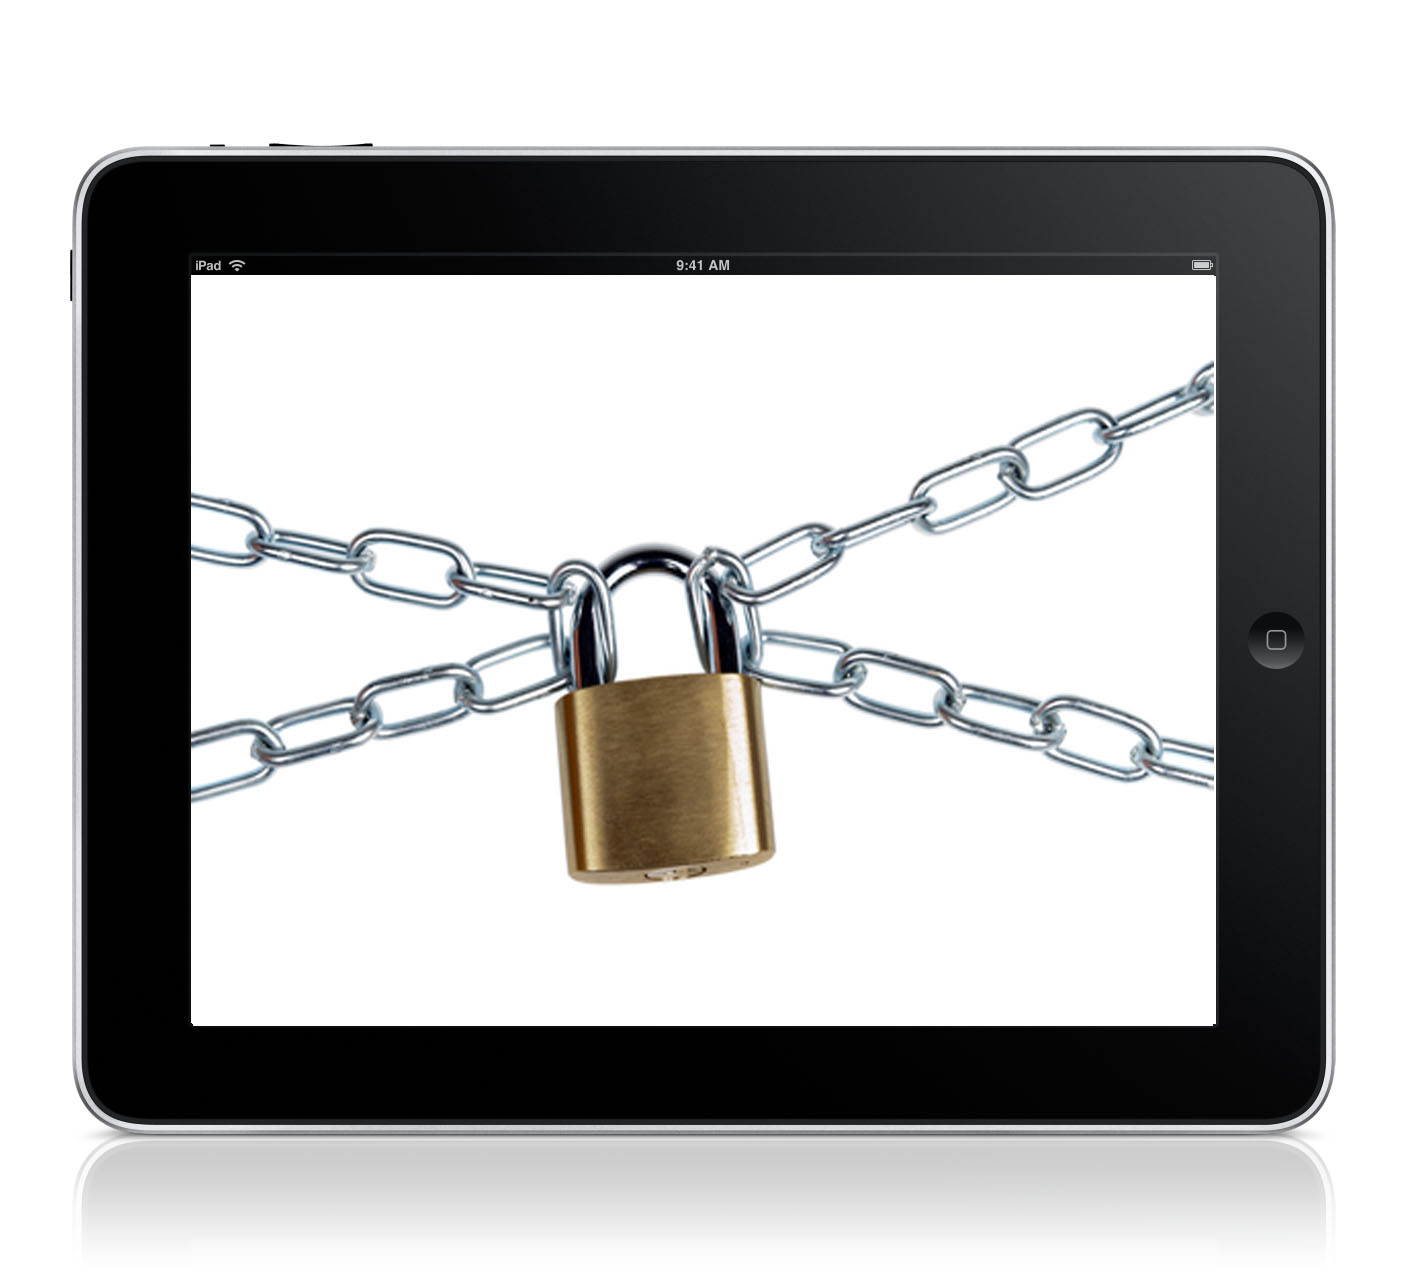 Ipad Chain Lock Ipad Ipad Air Ipad Pro Ios 10 3 1